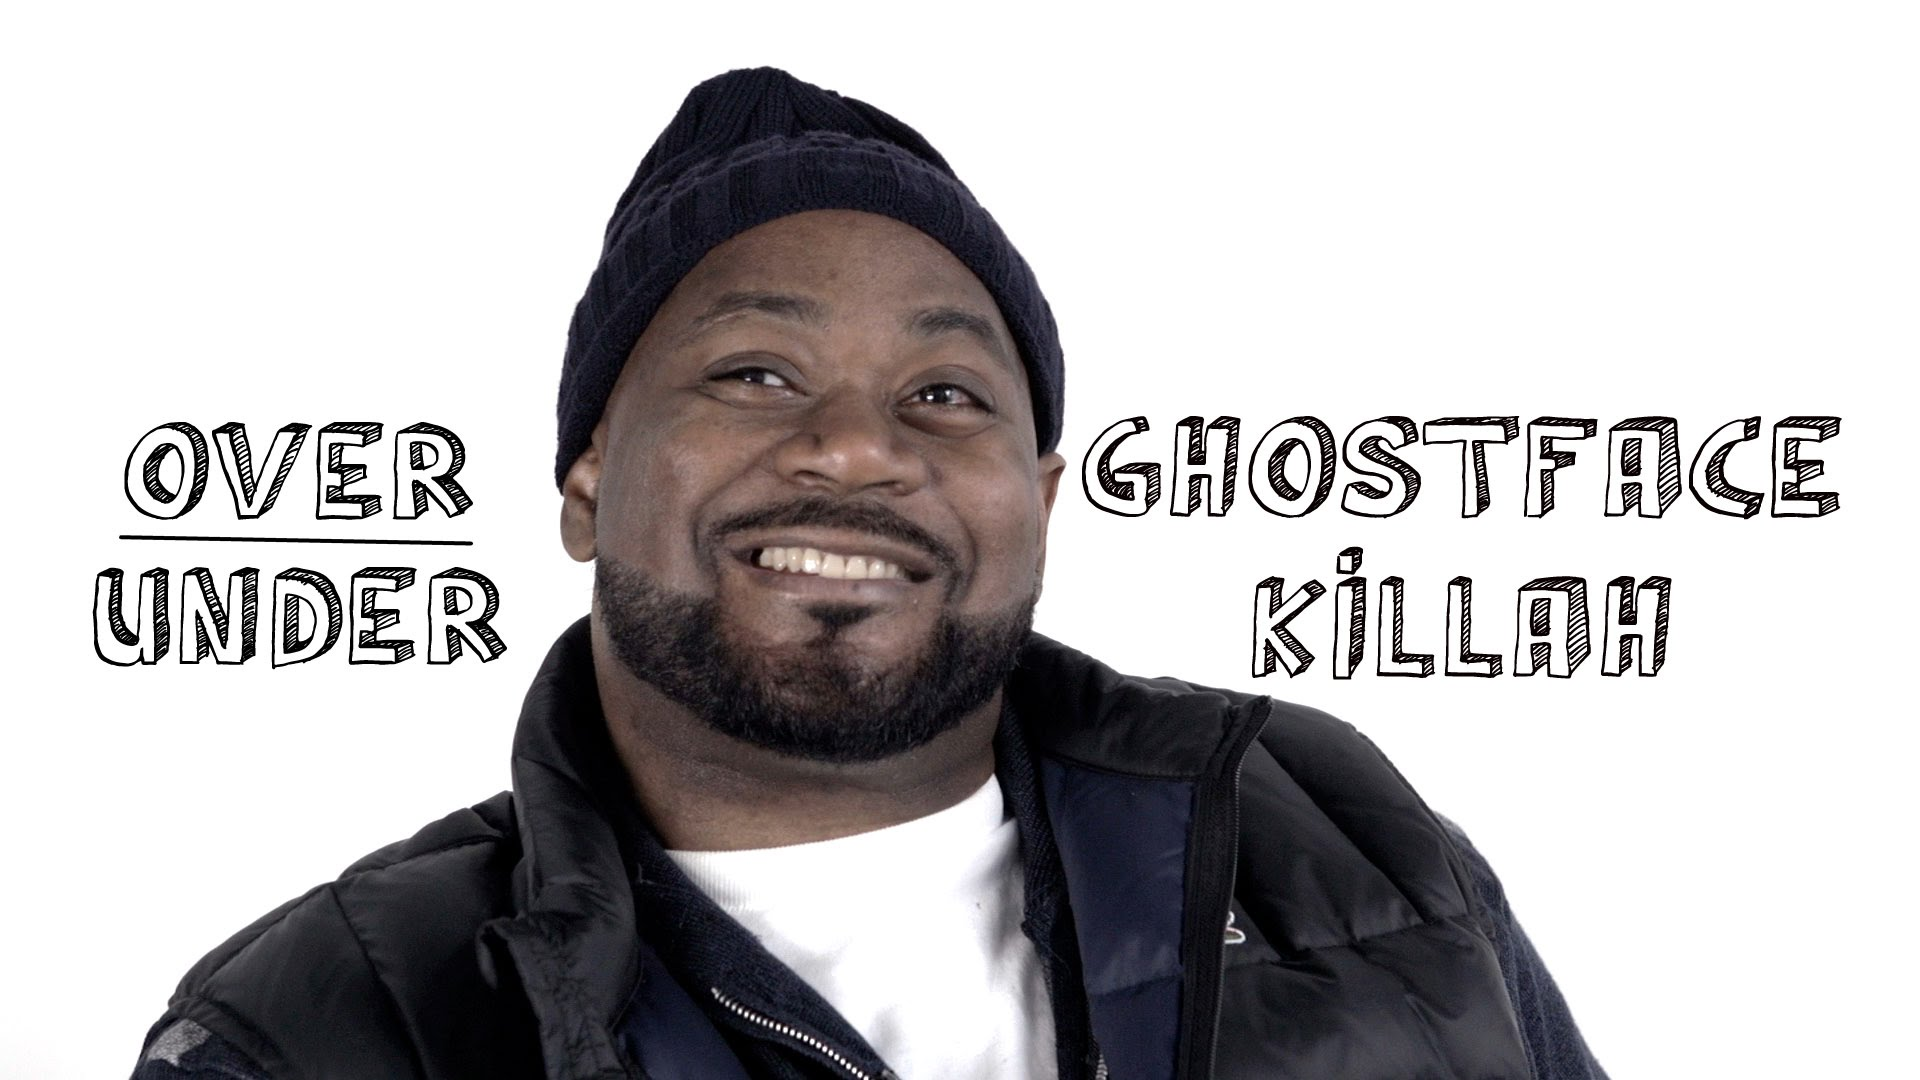 ghostface-killah-over-under